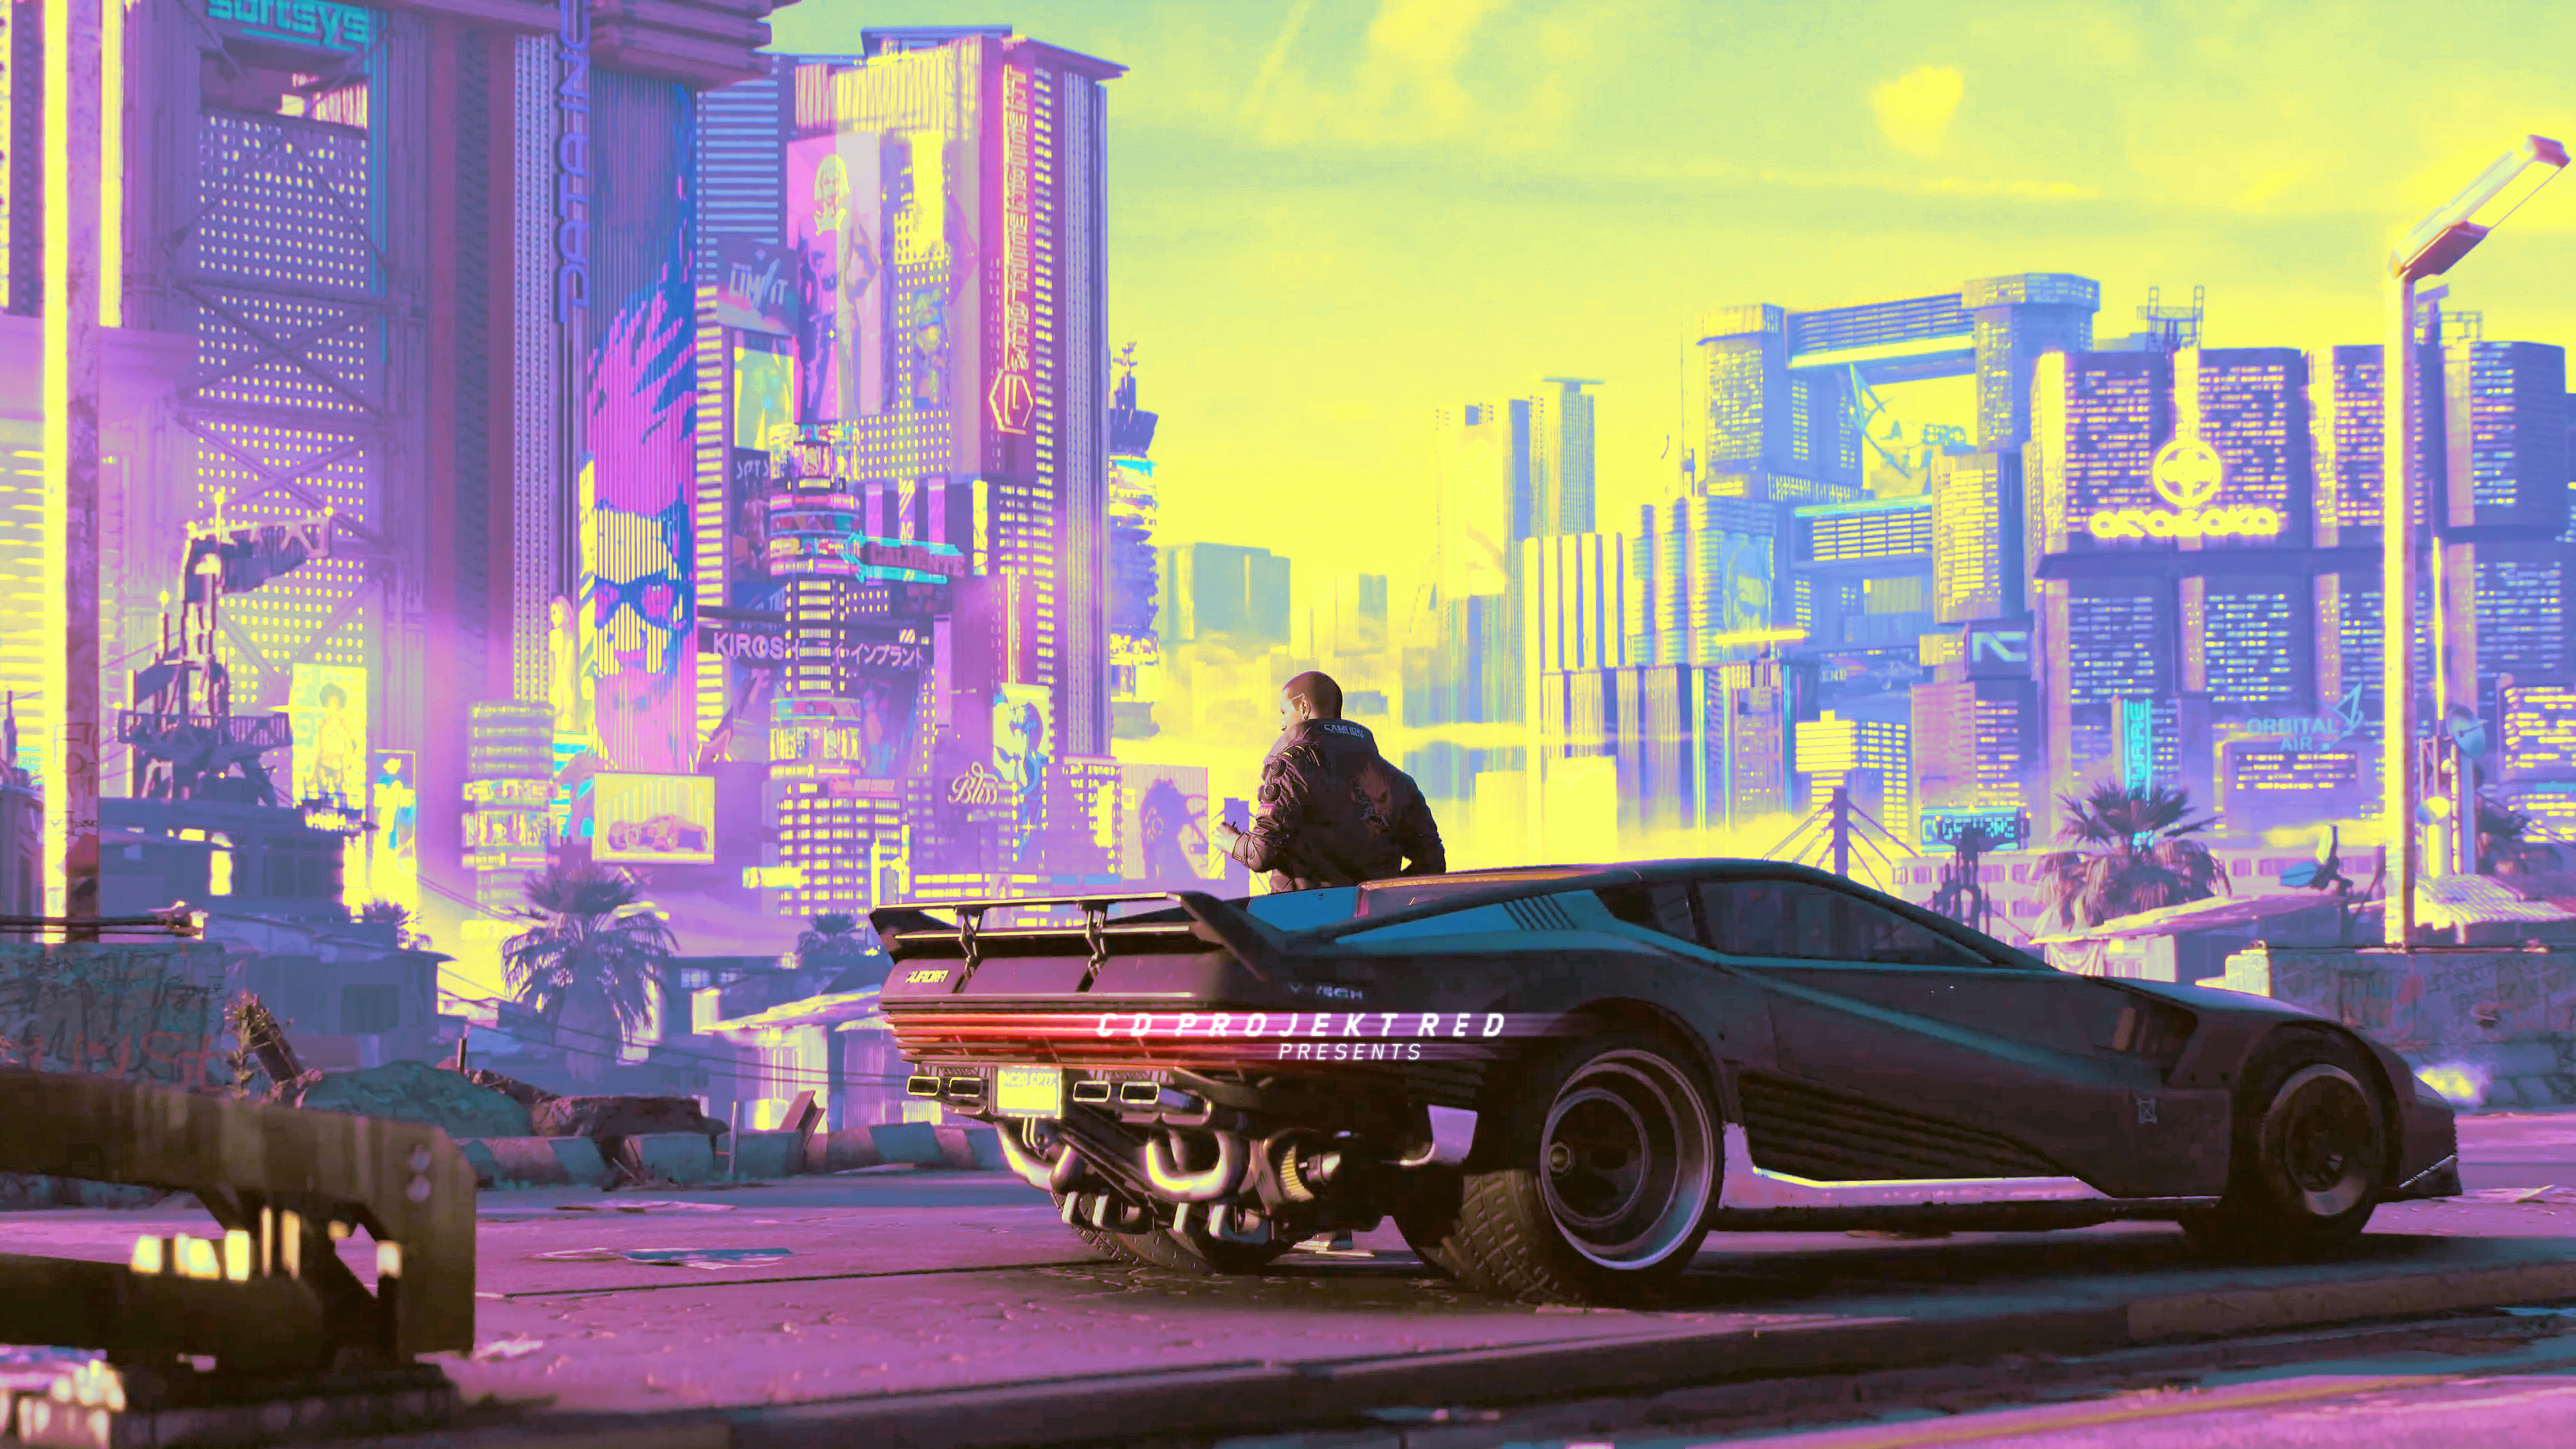 1920x1080 Cyberpunk 2077 Artistic 4k Laptop Full Hd 1080p Hd 4k Wallpapers Images Backgrounds Photos And Pictures